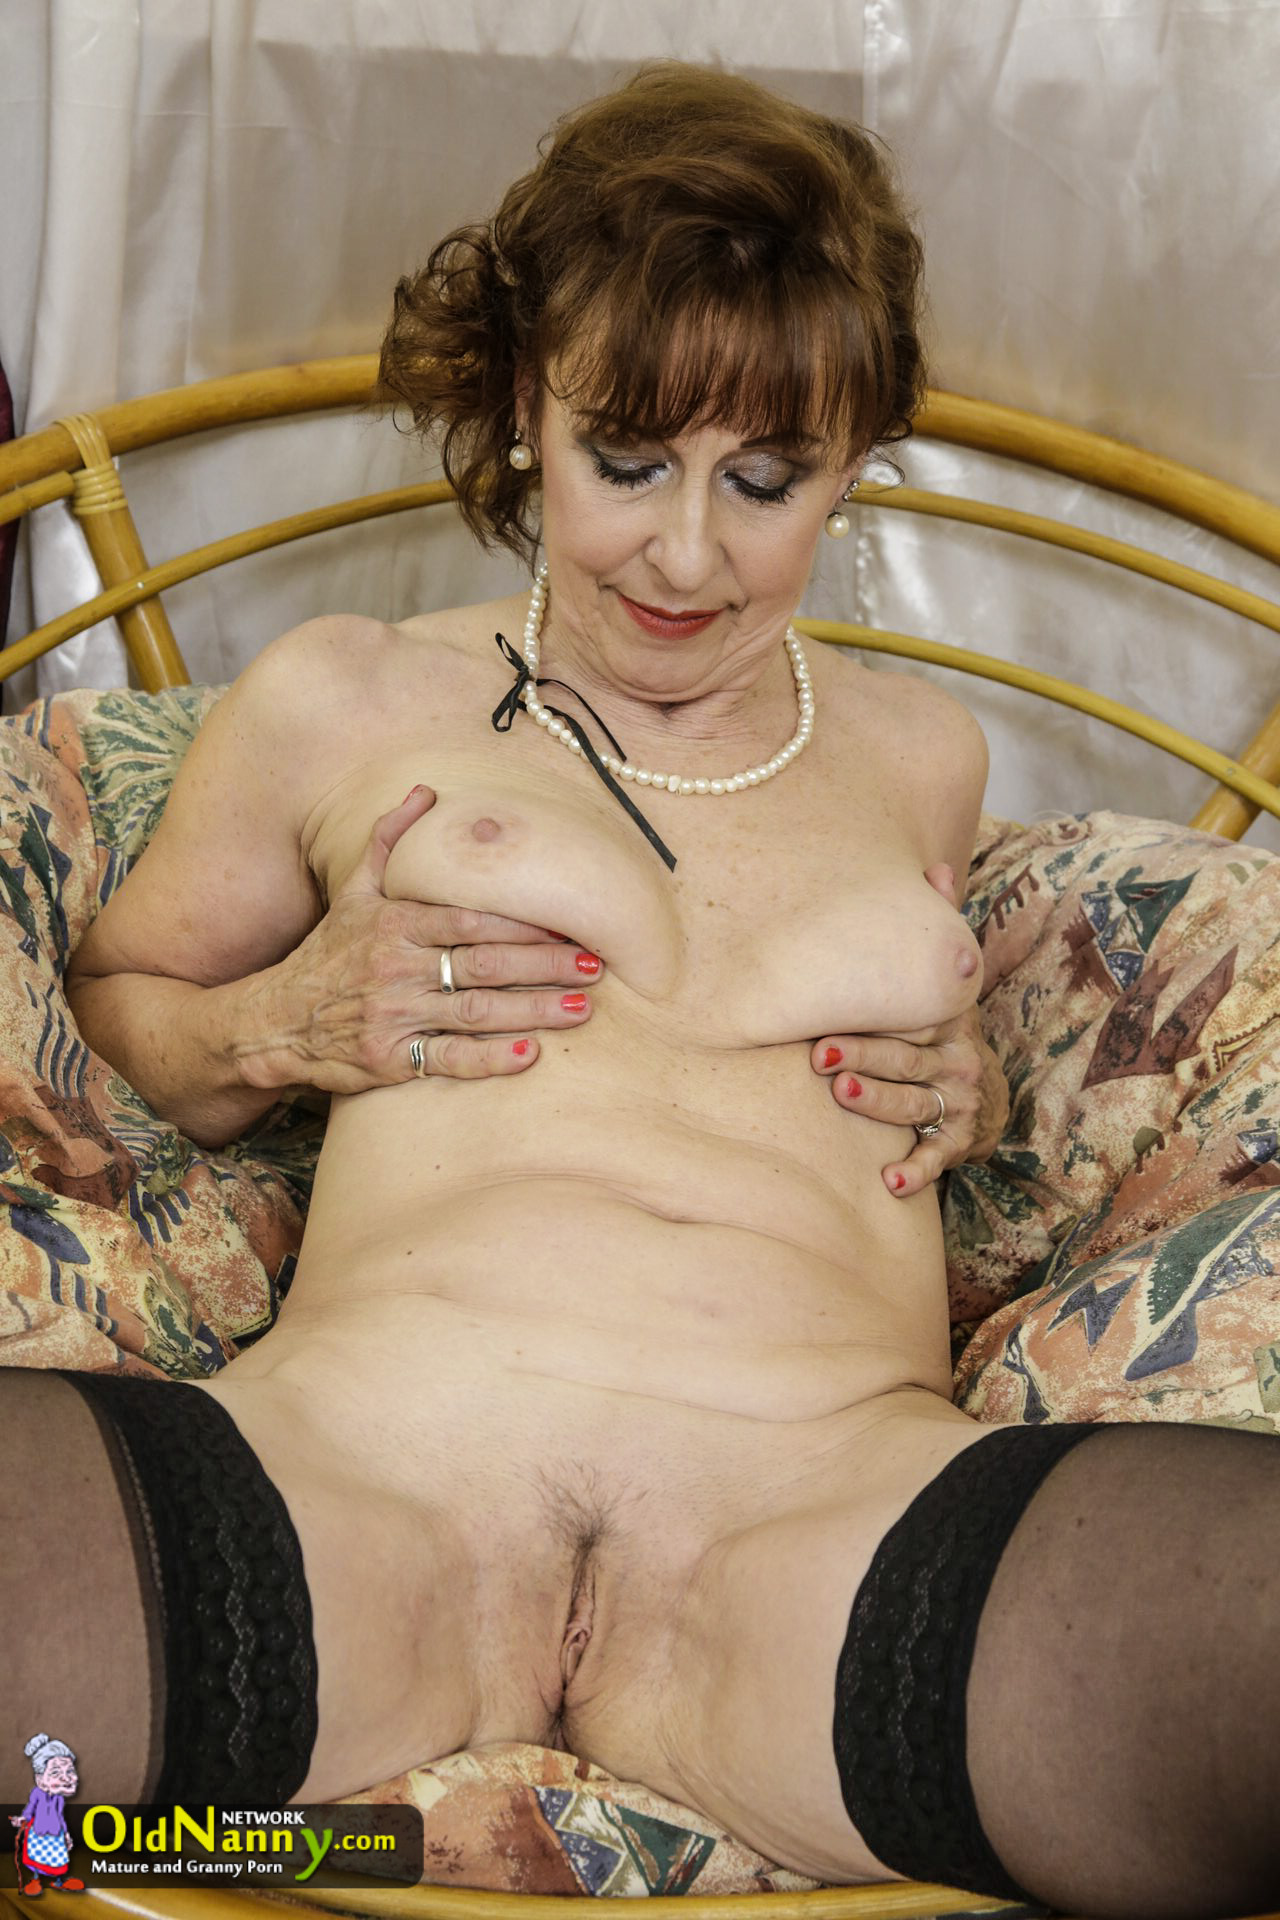 OLDNANNY Pretty shaved pussy